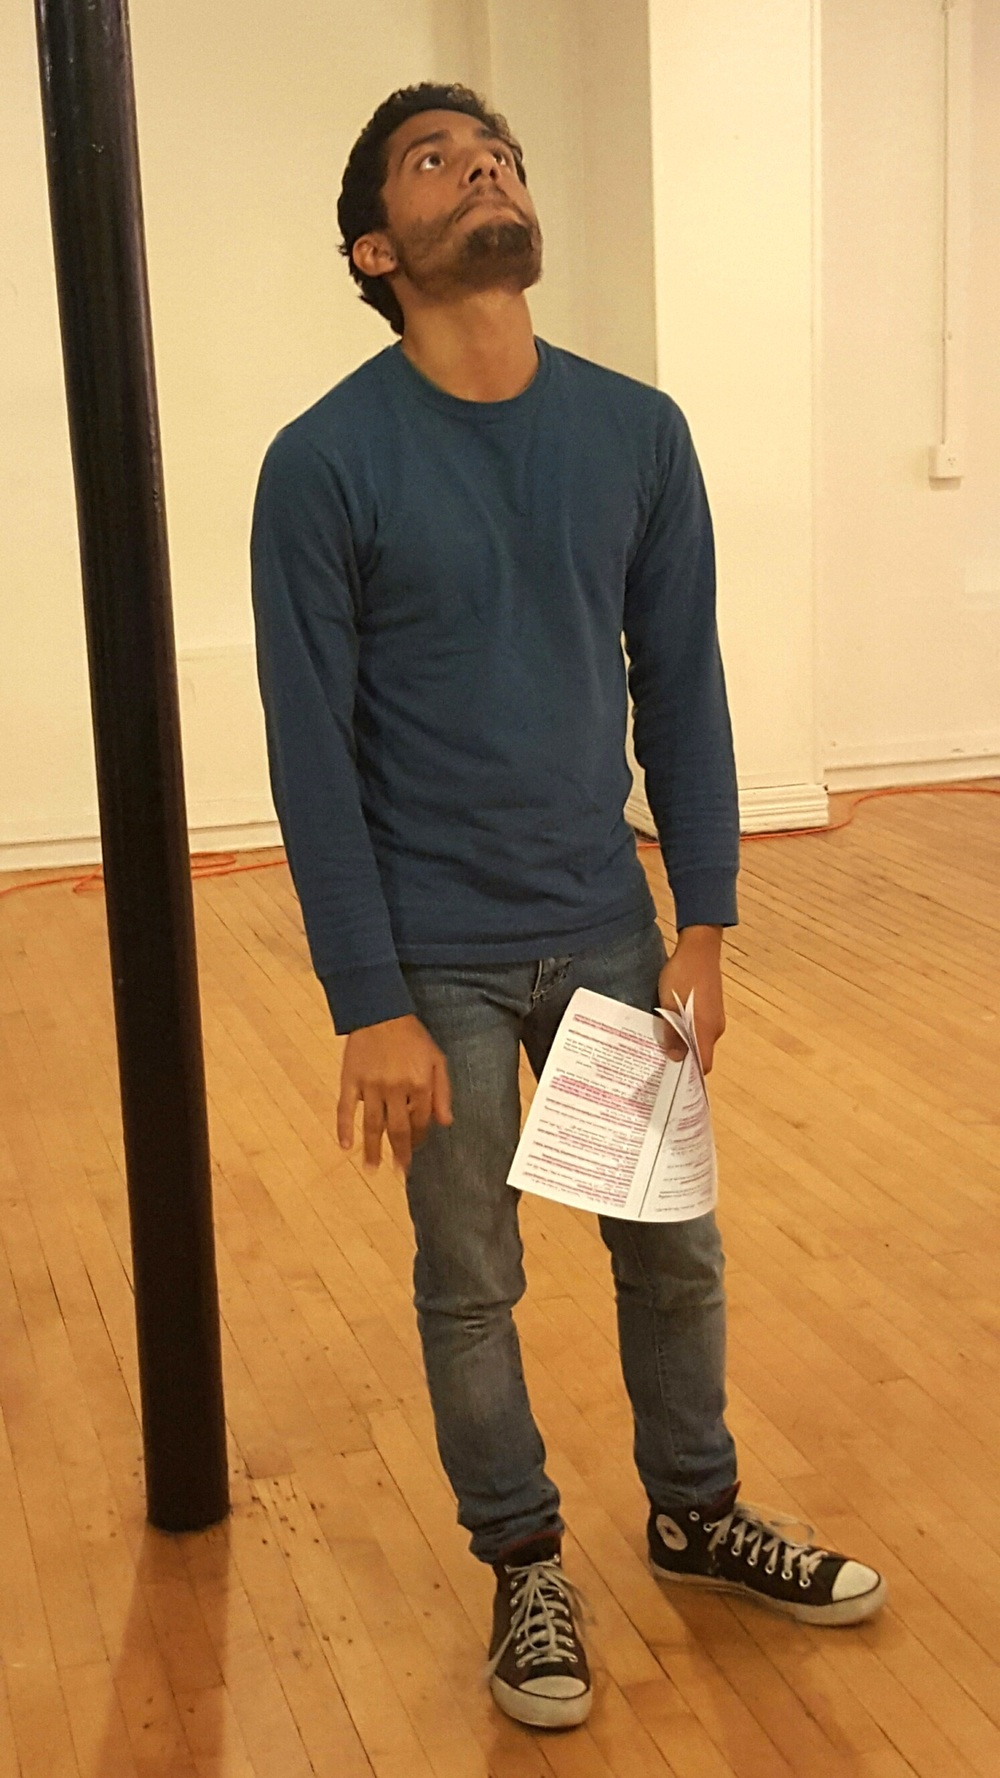 IN REHEARSAL: Christopher Sylvie plays Nihar, the mysterious youth who is on the run from the King of Shadows in a play by Roberto Aguirre-Sacasa, presented by Janus Theatre.